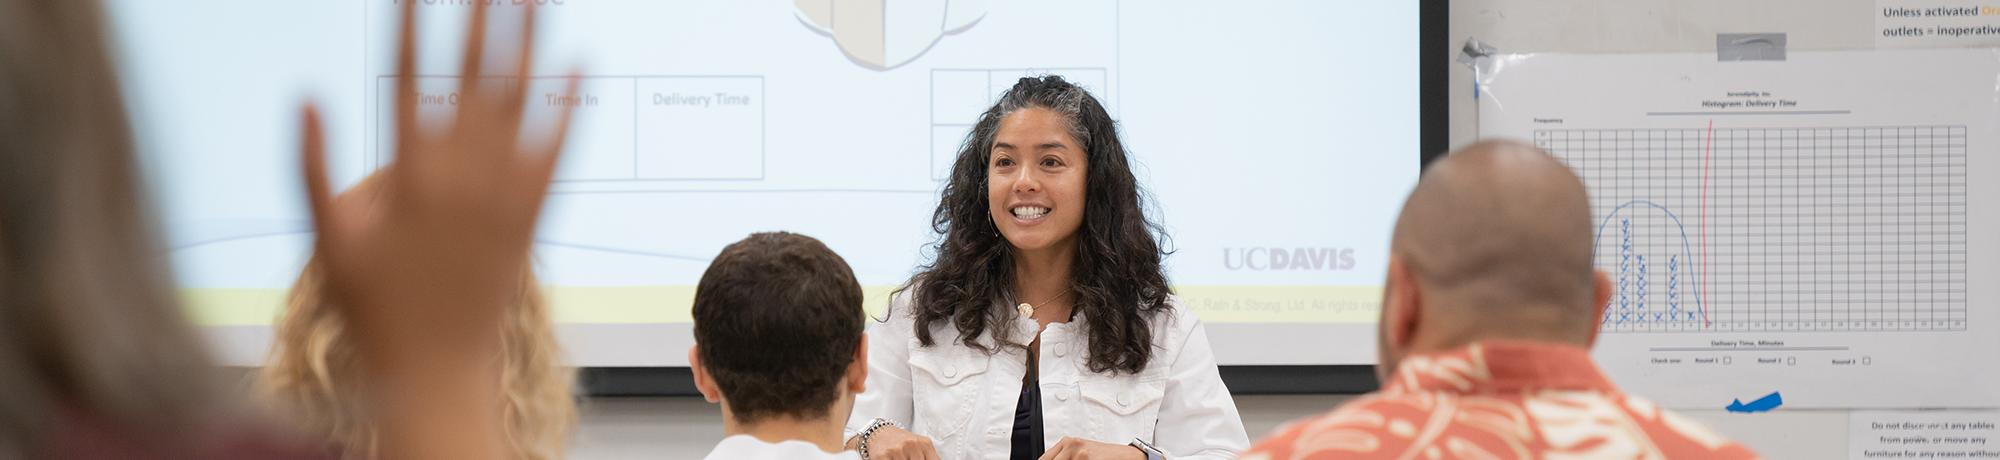 woman smiling and answering questions during a workshop